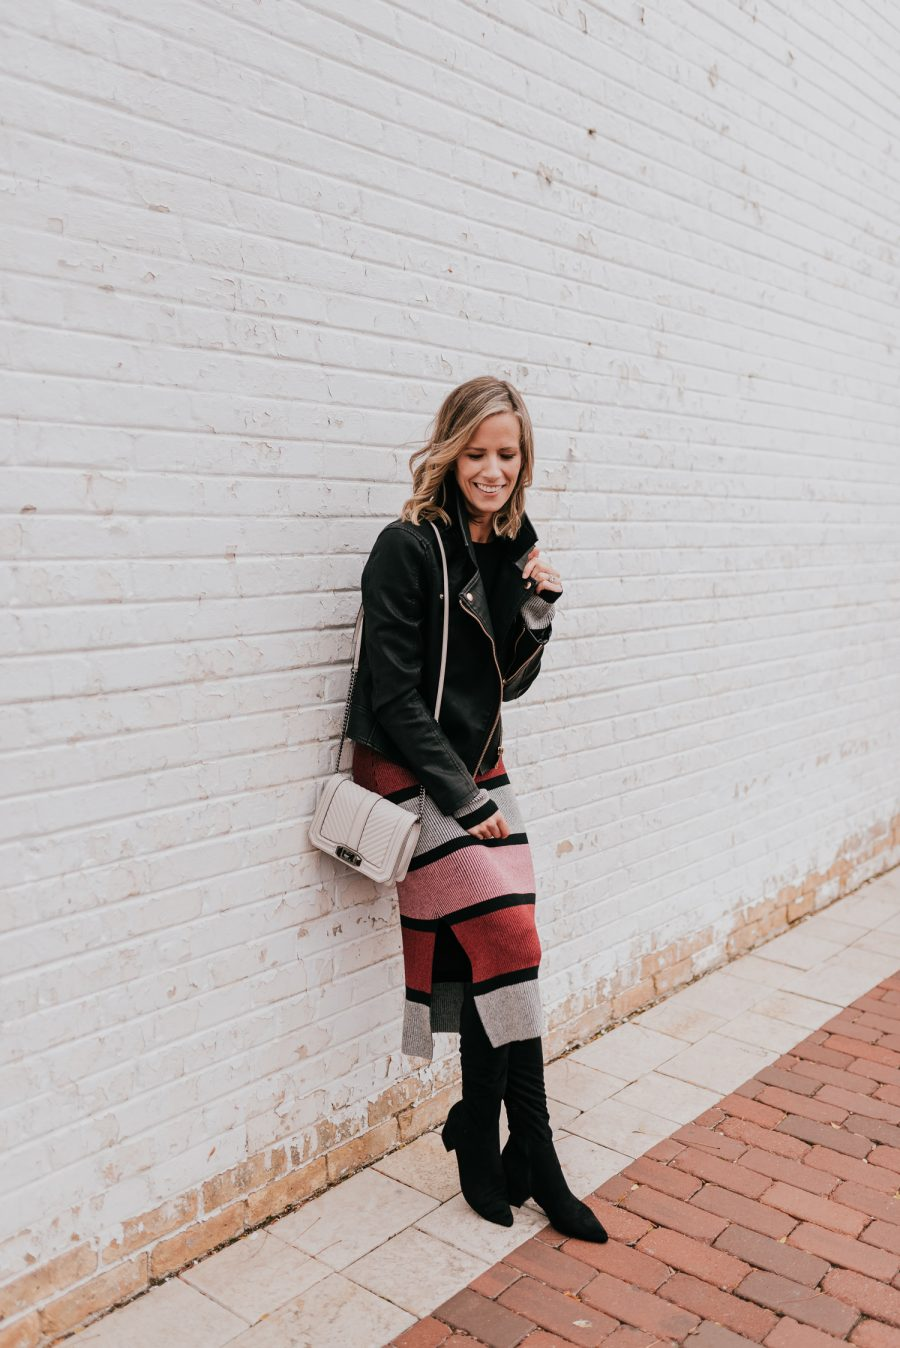 Favorite looks of 2018, sweater dress, moto jacket, and boots